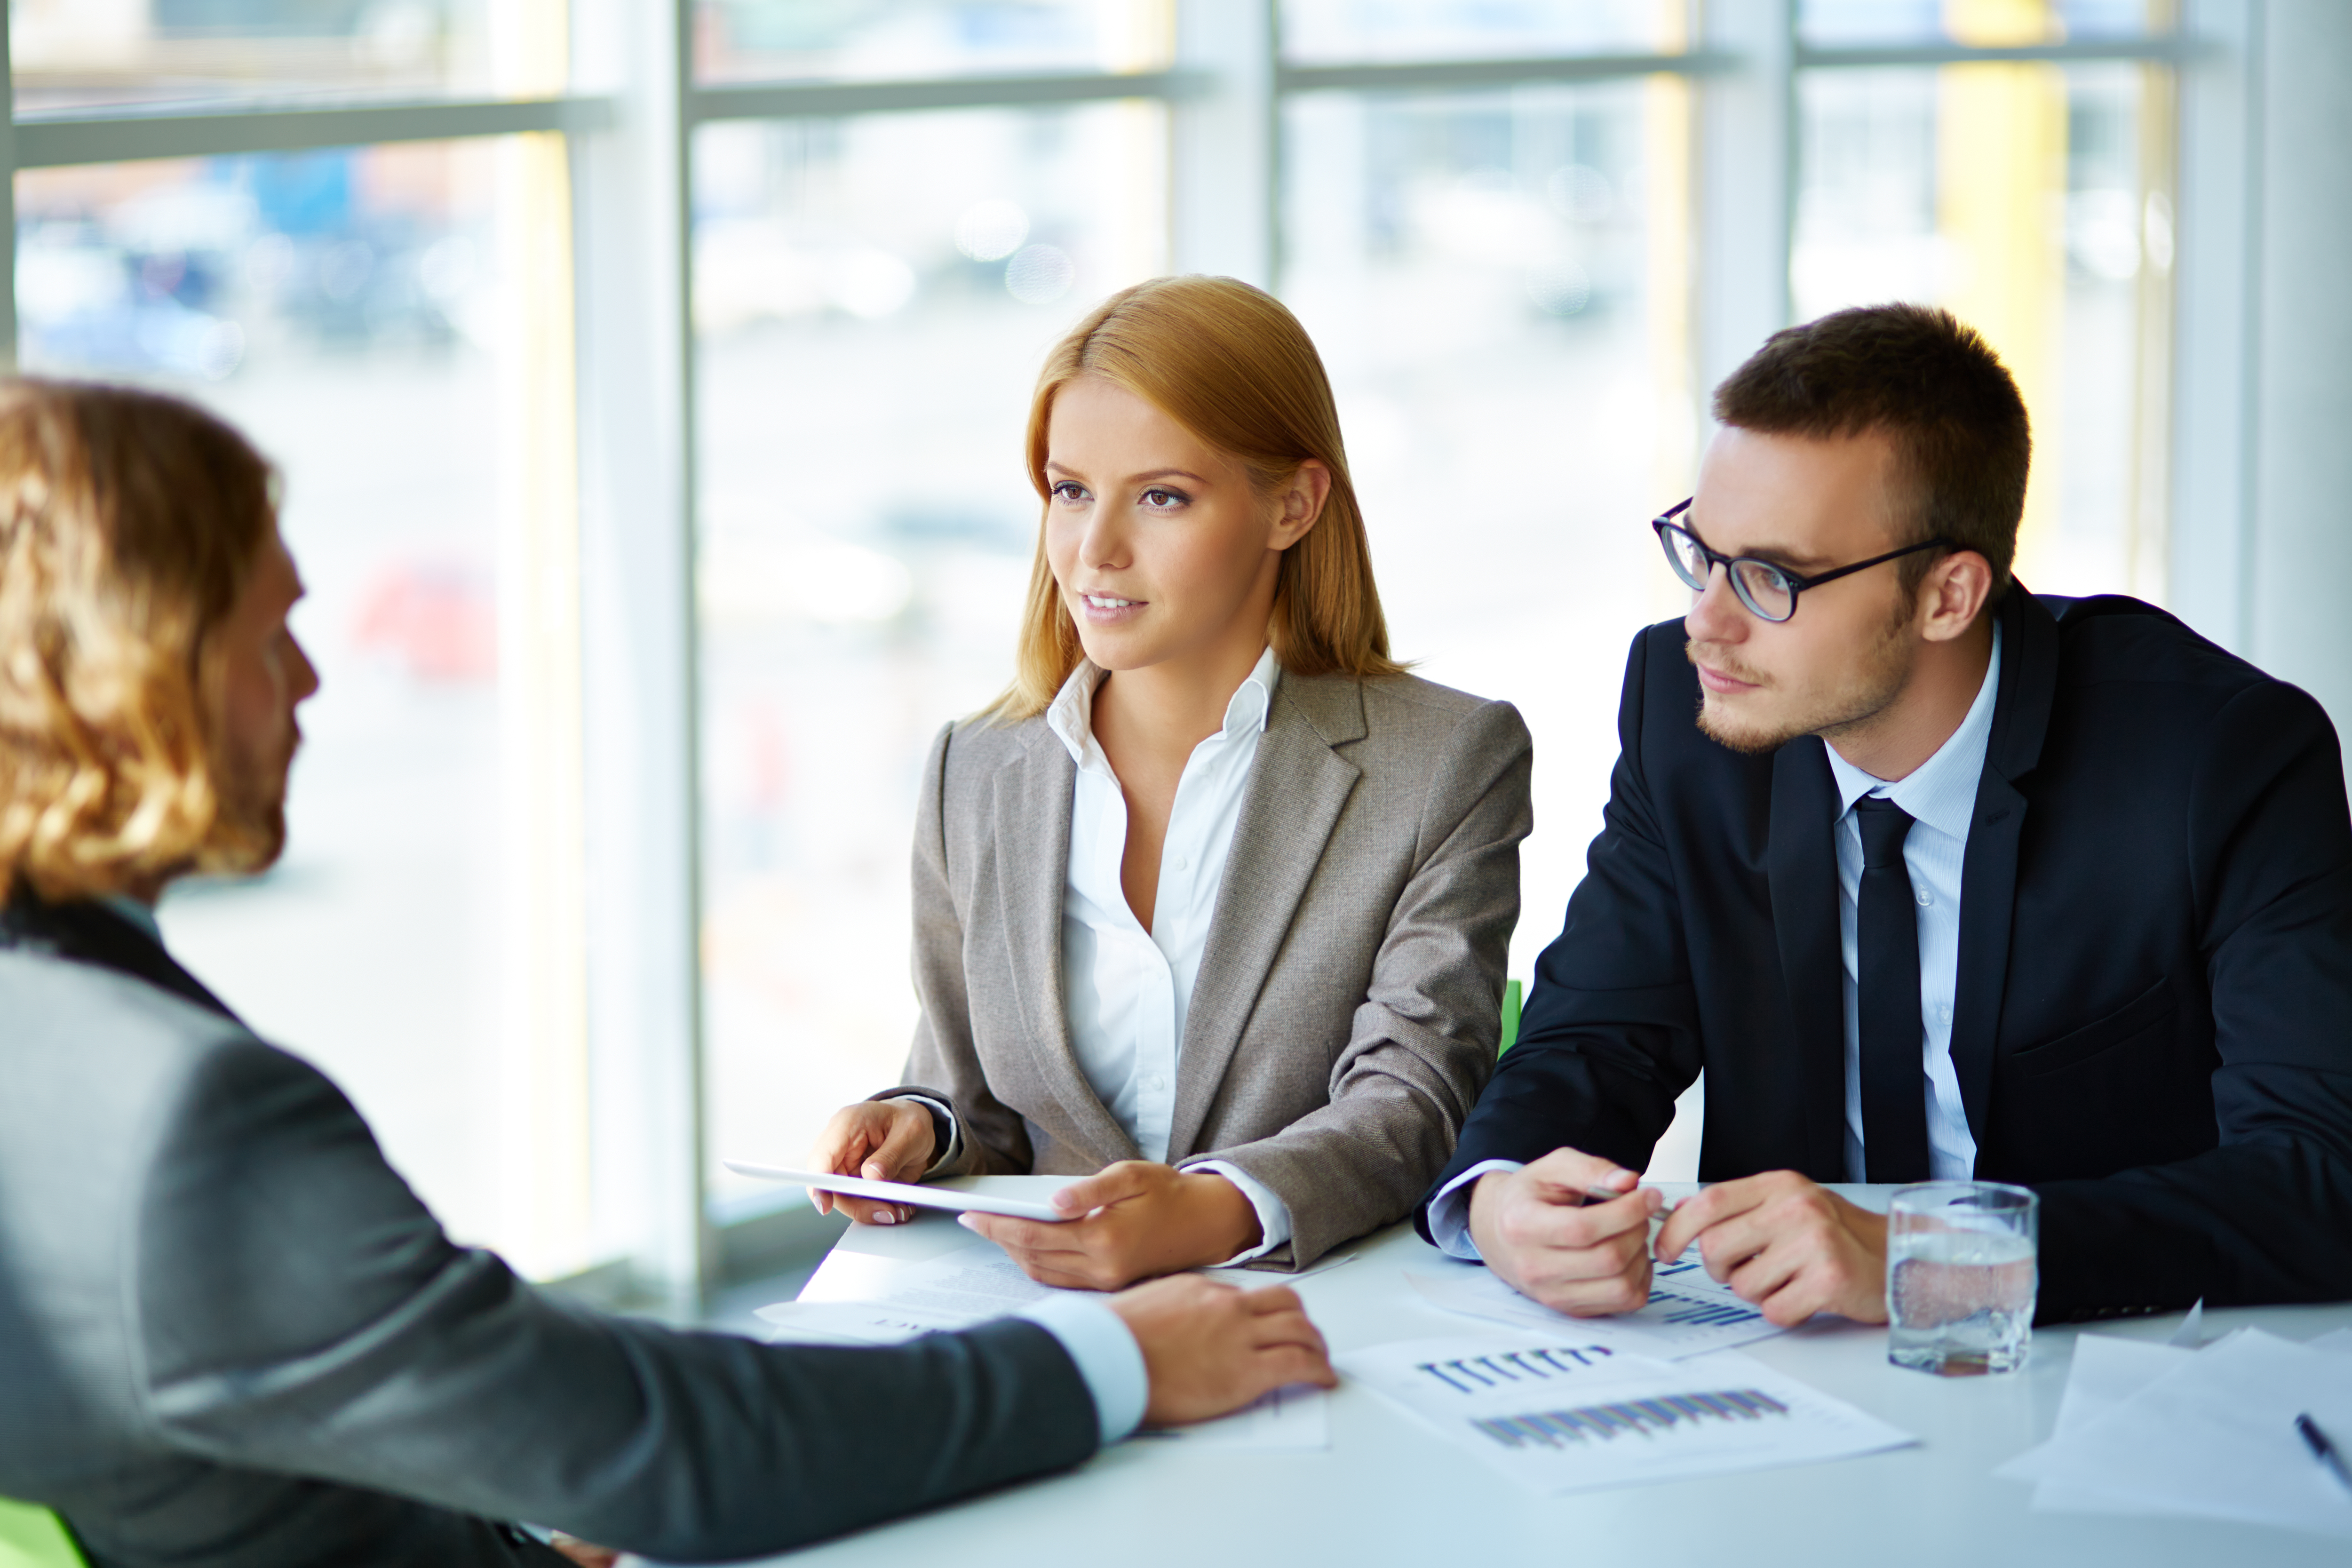 Two serious business partners listening attentively to young man at meeting in office